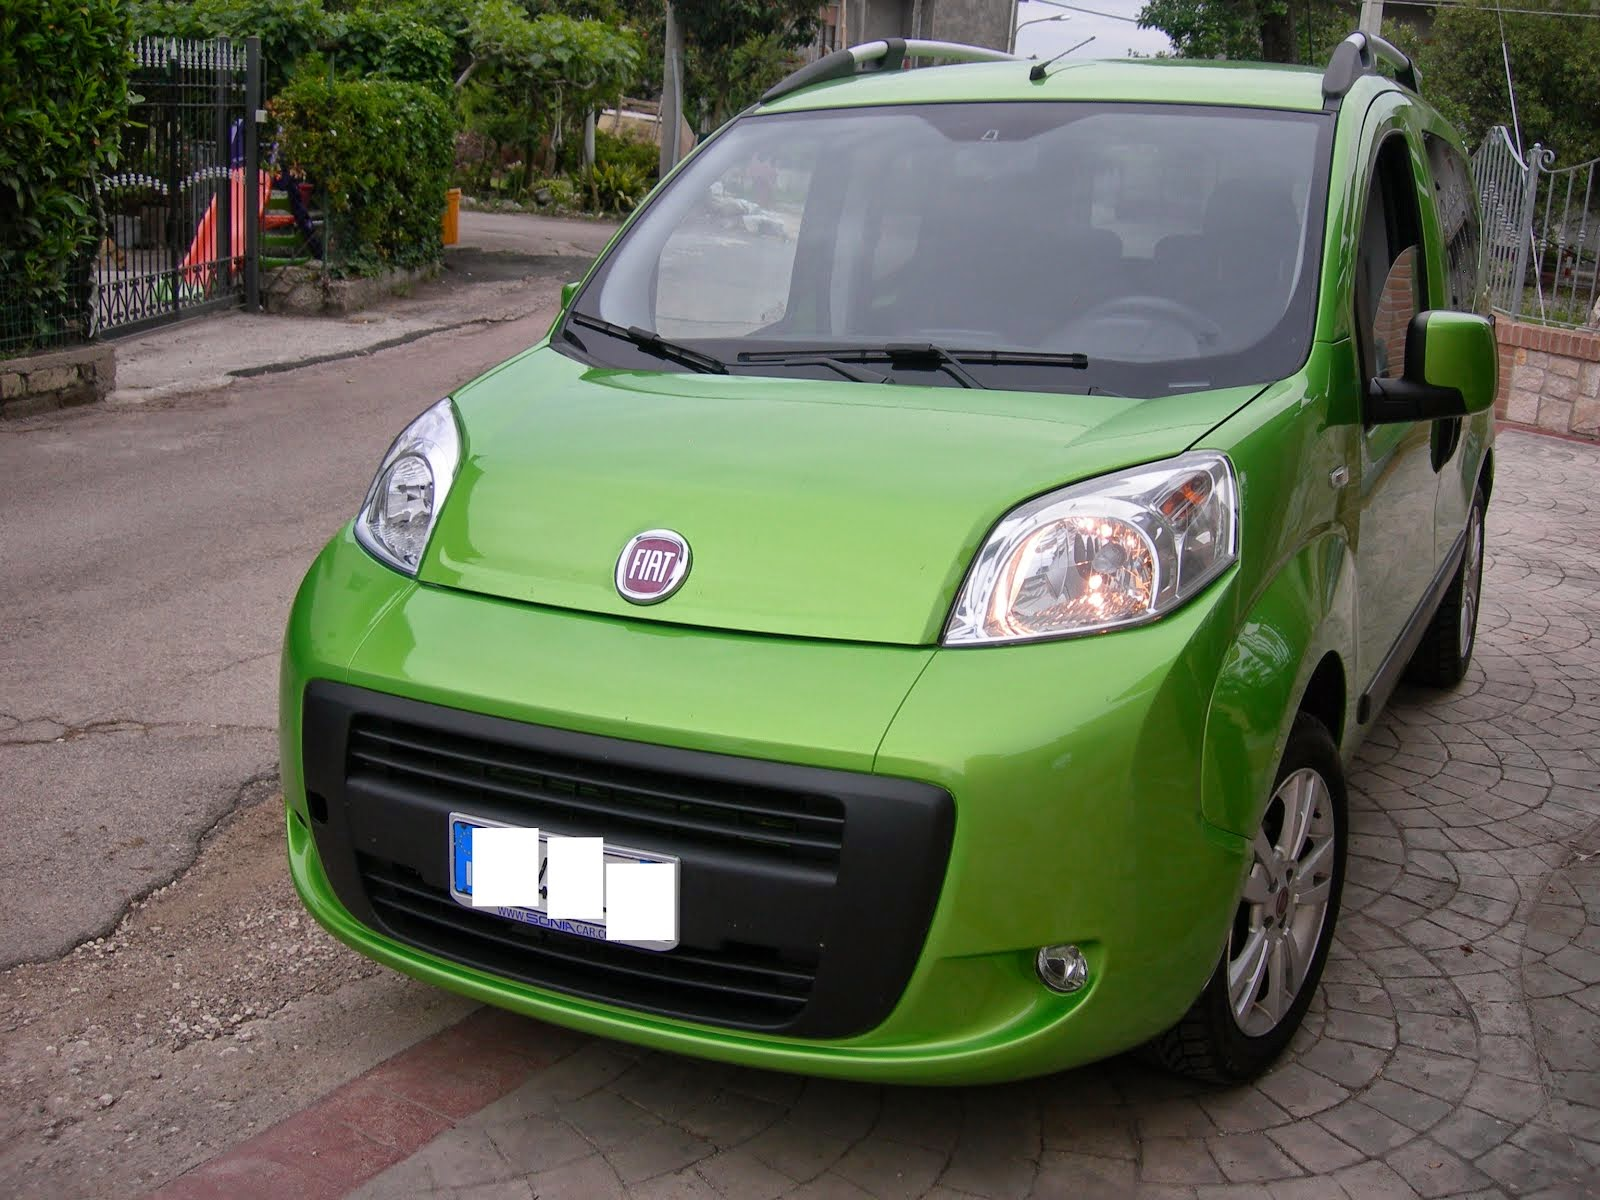 Fiat Qubo 1.4 Metano mylife Natural Power anno 2010 acc.full optional 8.500,00 Euro